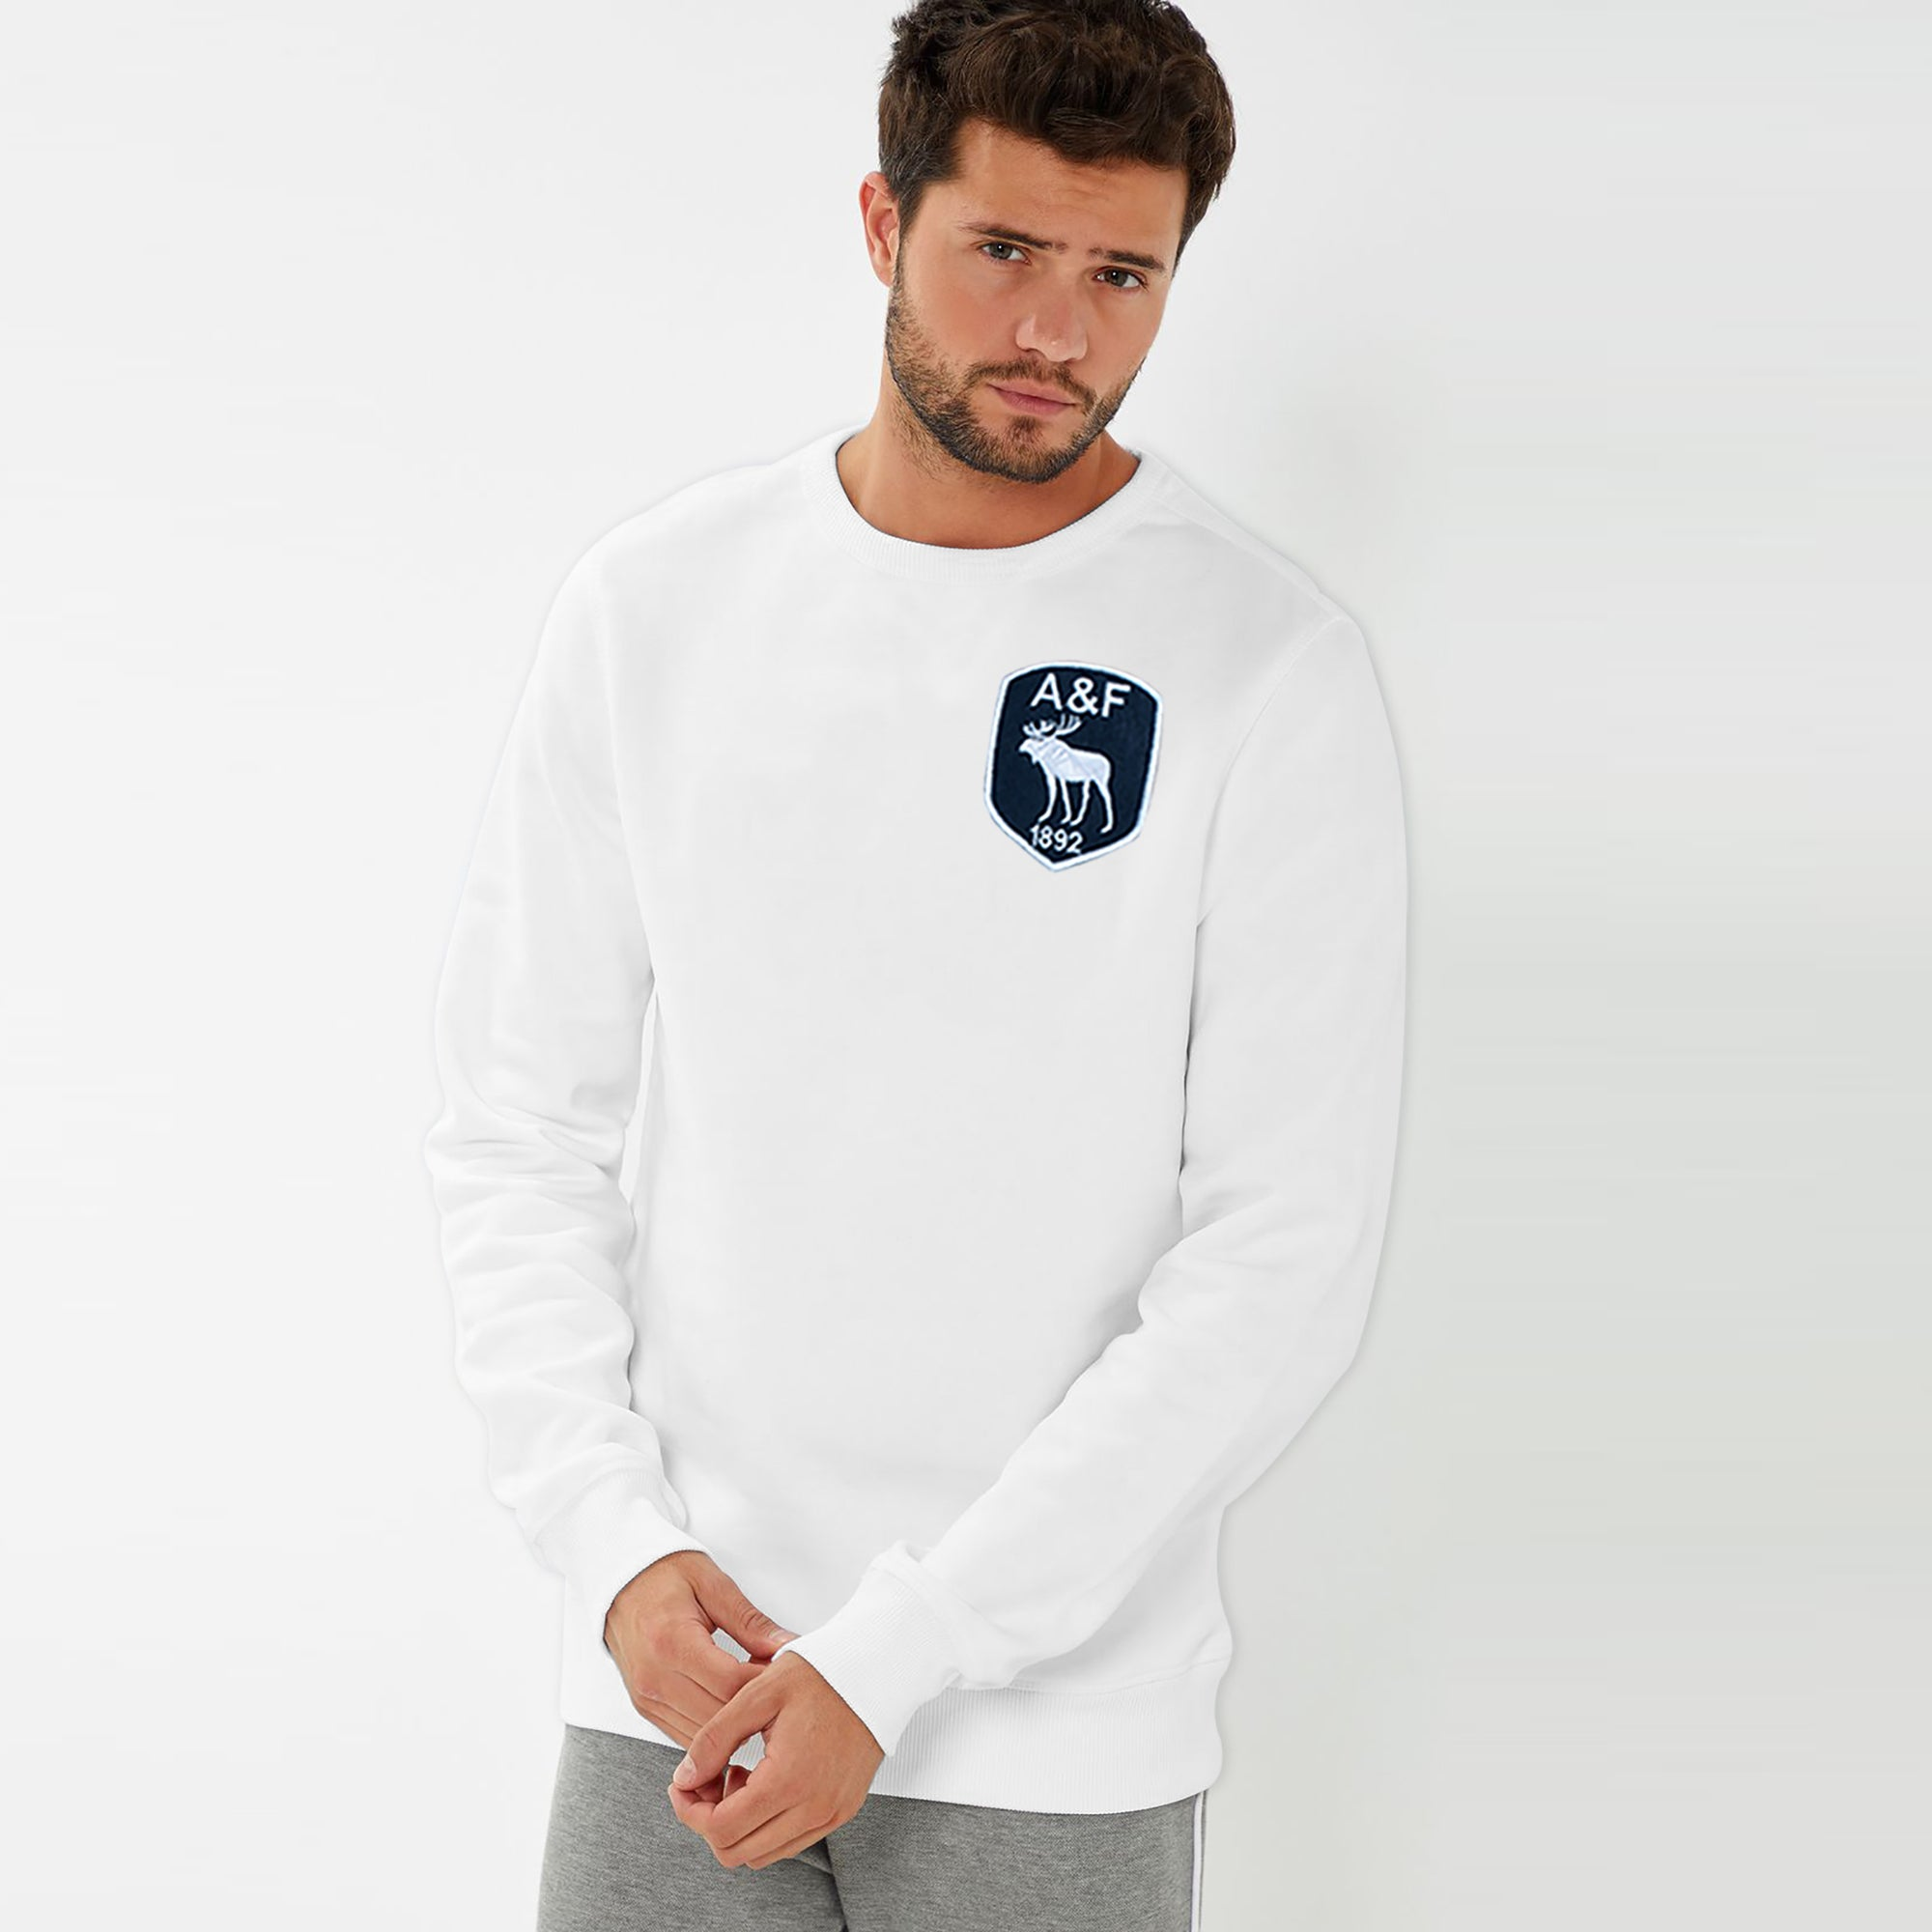 brandsego - A&F Fleece Crew Neck Sweatshirt For Men-White-BE7725